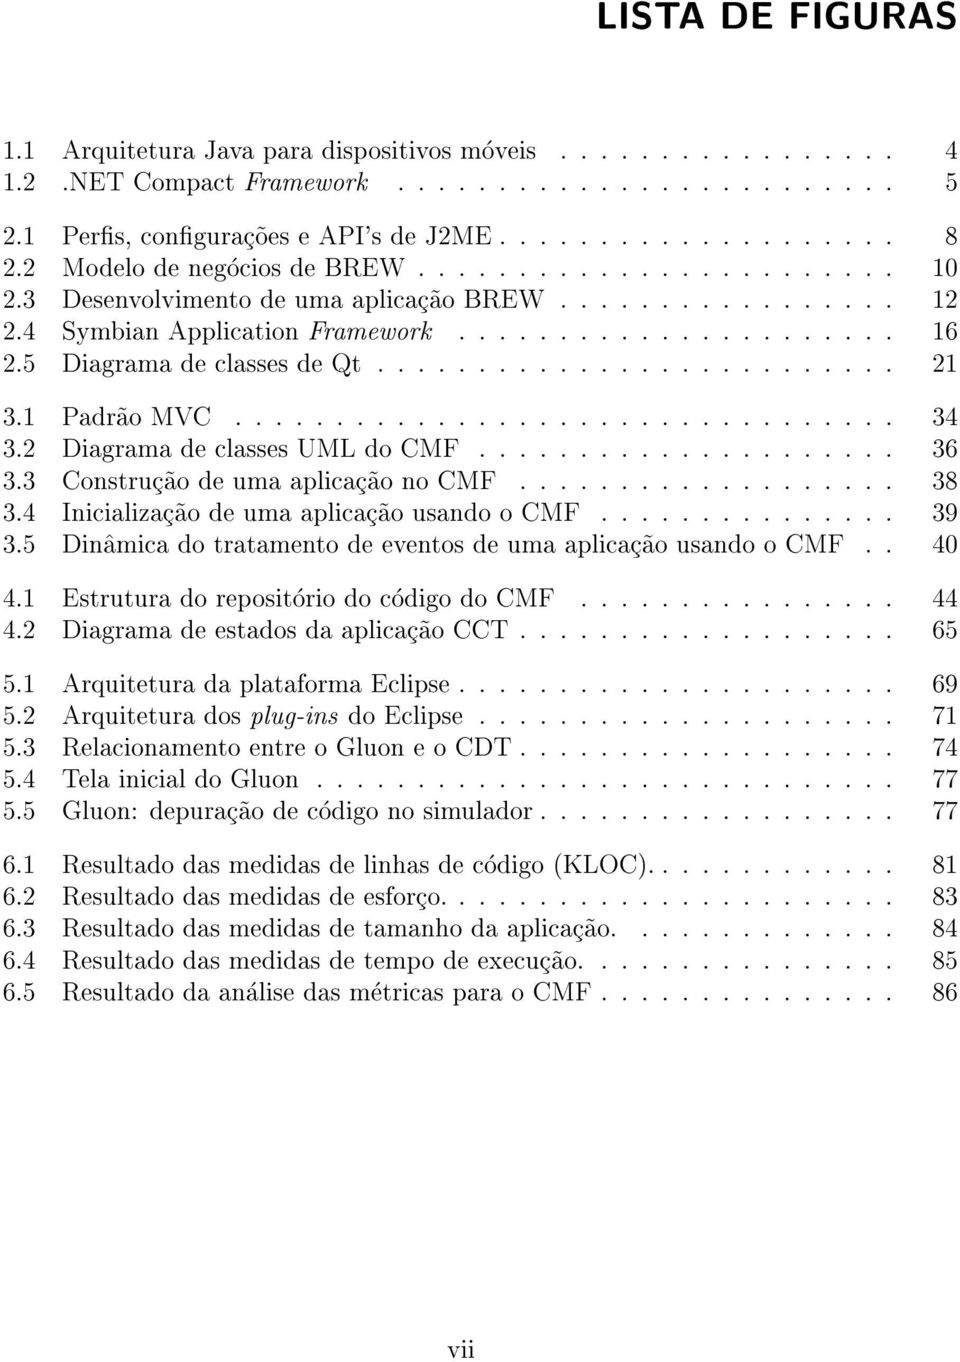 5 Diagrama de classes de Qt.......................... 21 3.1 Padr~ao MVC................................. 34 3.2 Diagrama de classes UML do CMF..................... 36 3.